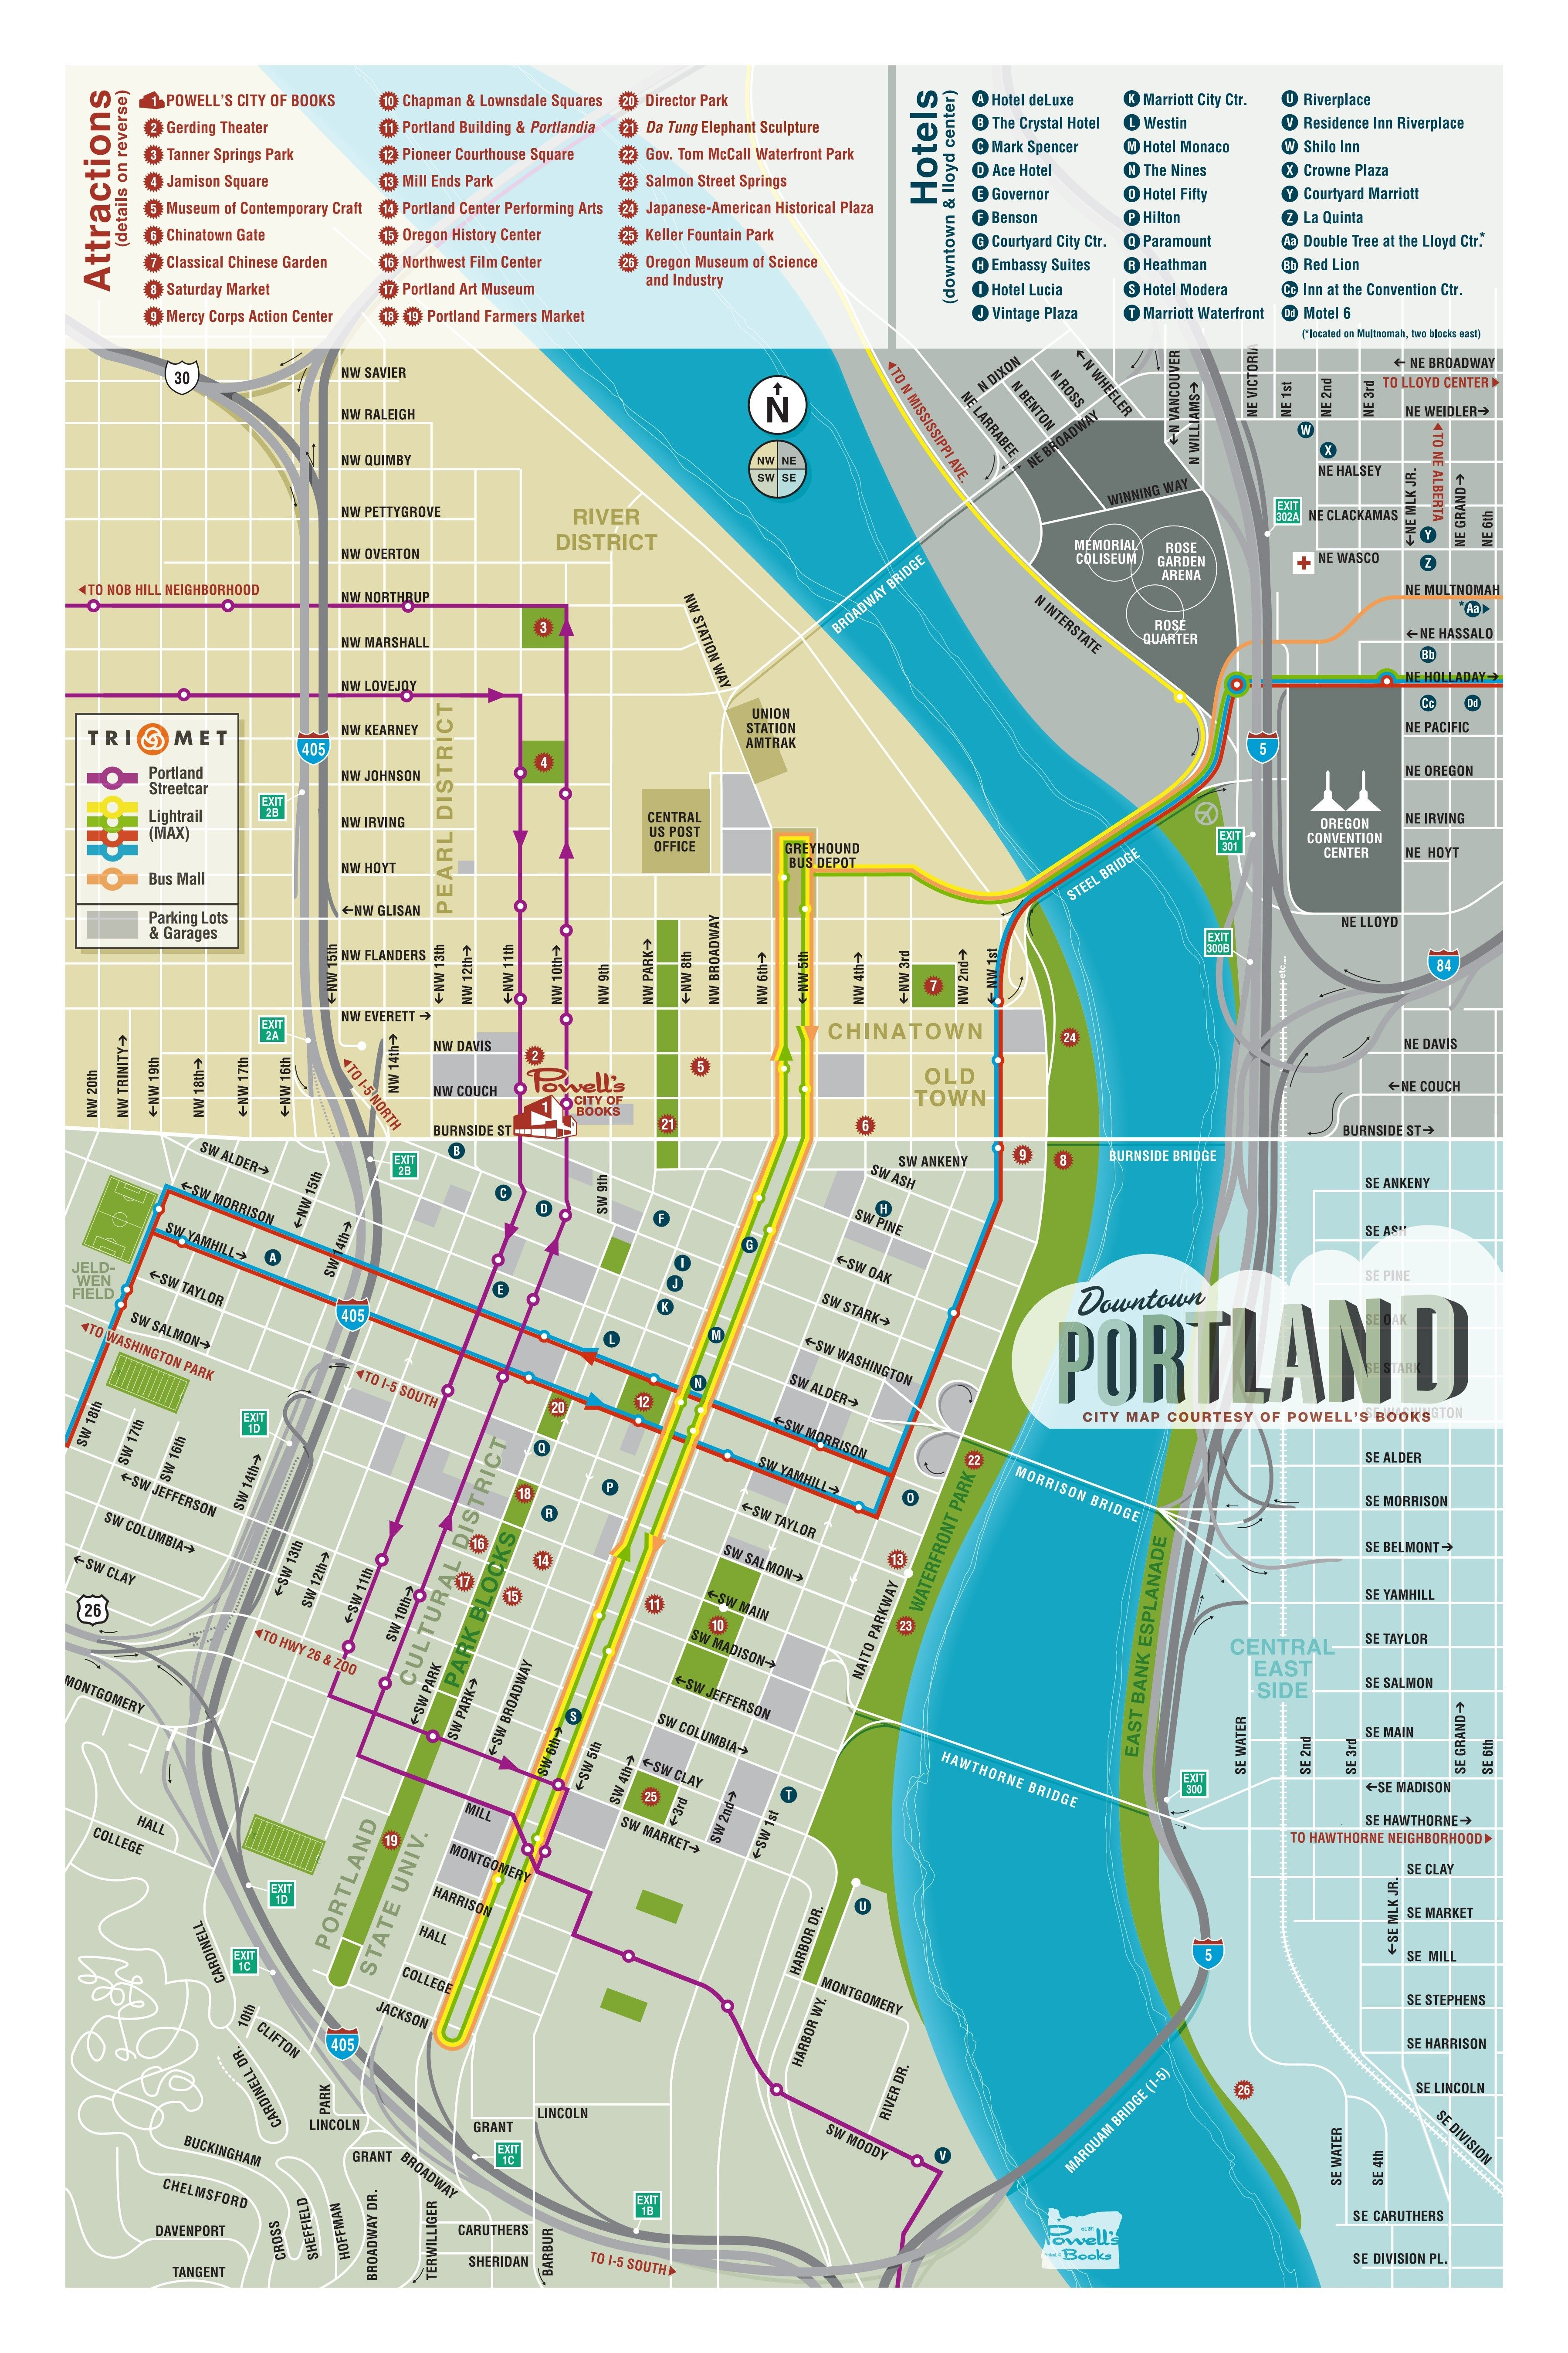 Downtown Portland Map Map of Downtown Portland   courtesy of Powell's Books | Maps in